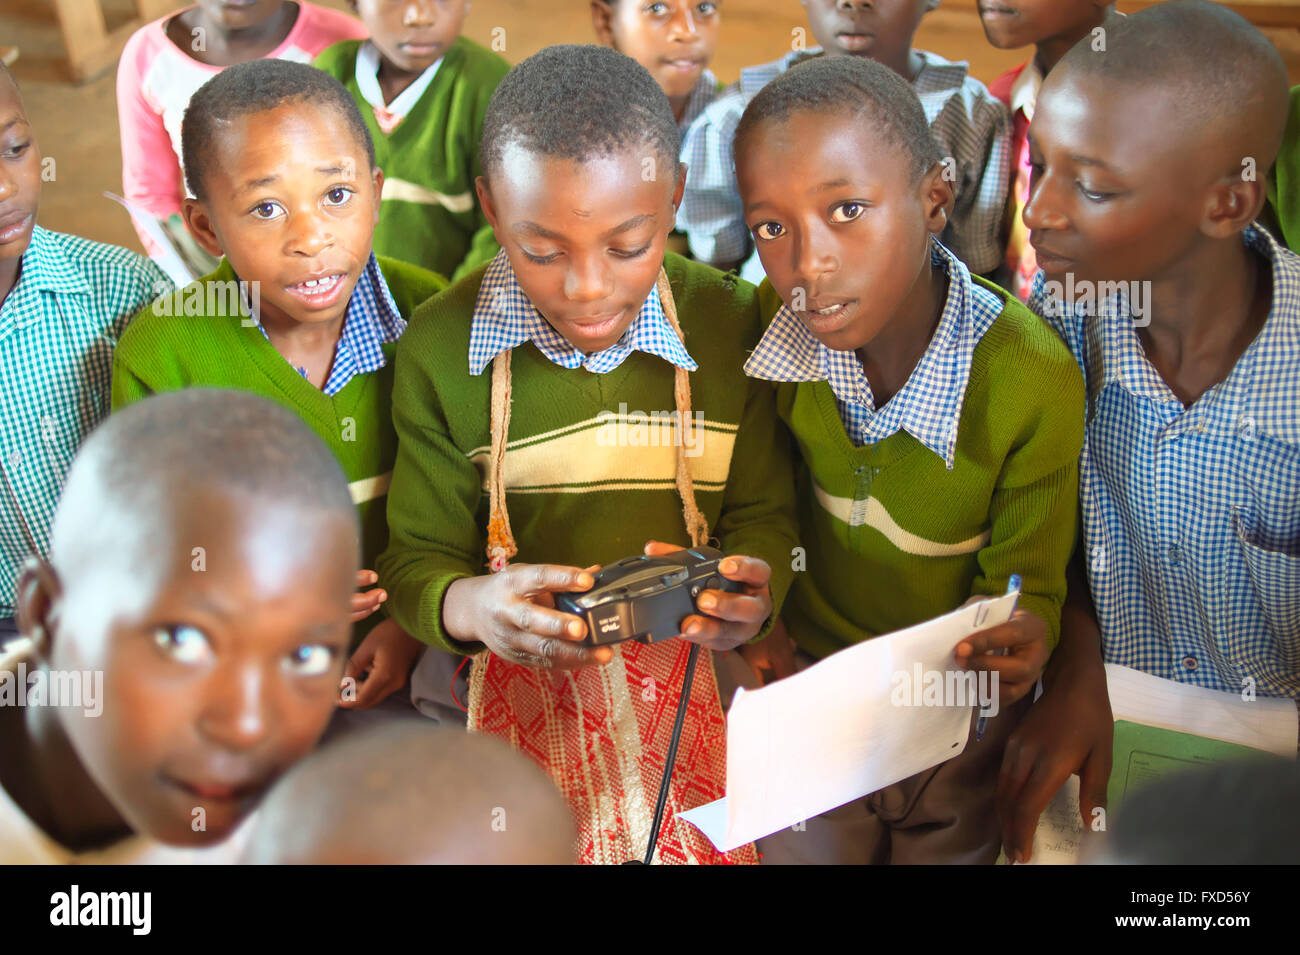 Ugandan school children in uniform at school gather around and study a camera during photography and art lessons - Stock Image